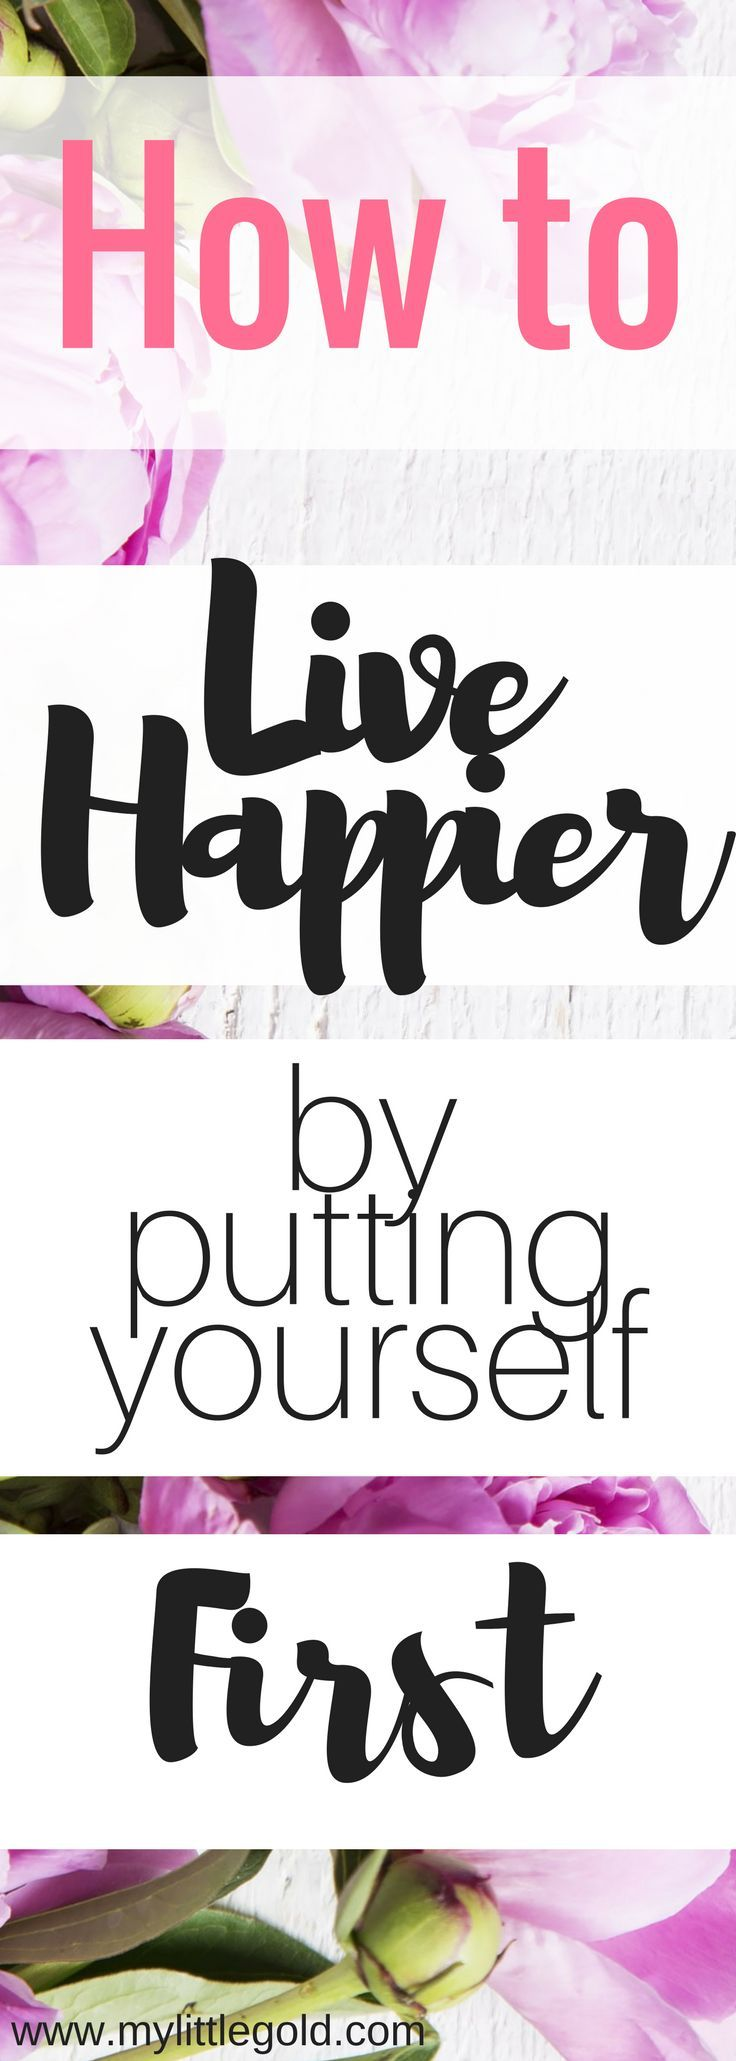 It's about time I realized I need to put myself first - check out how!